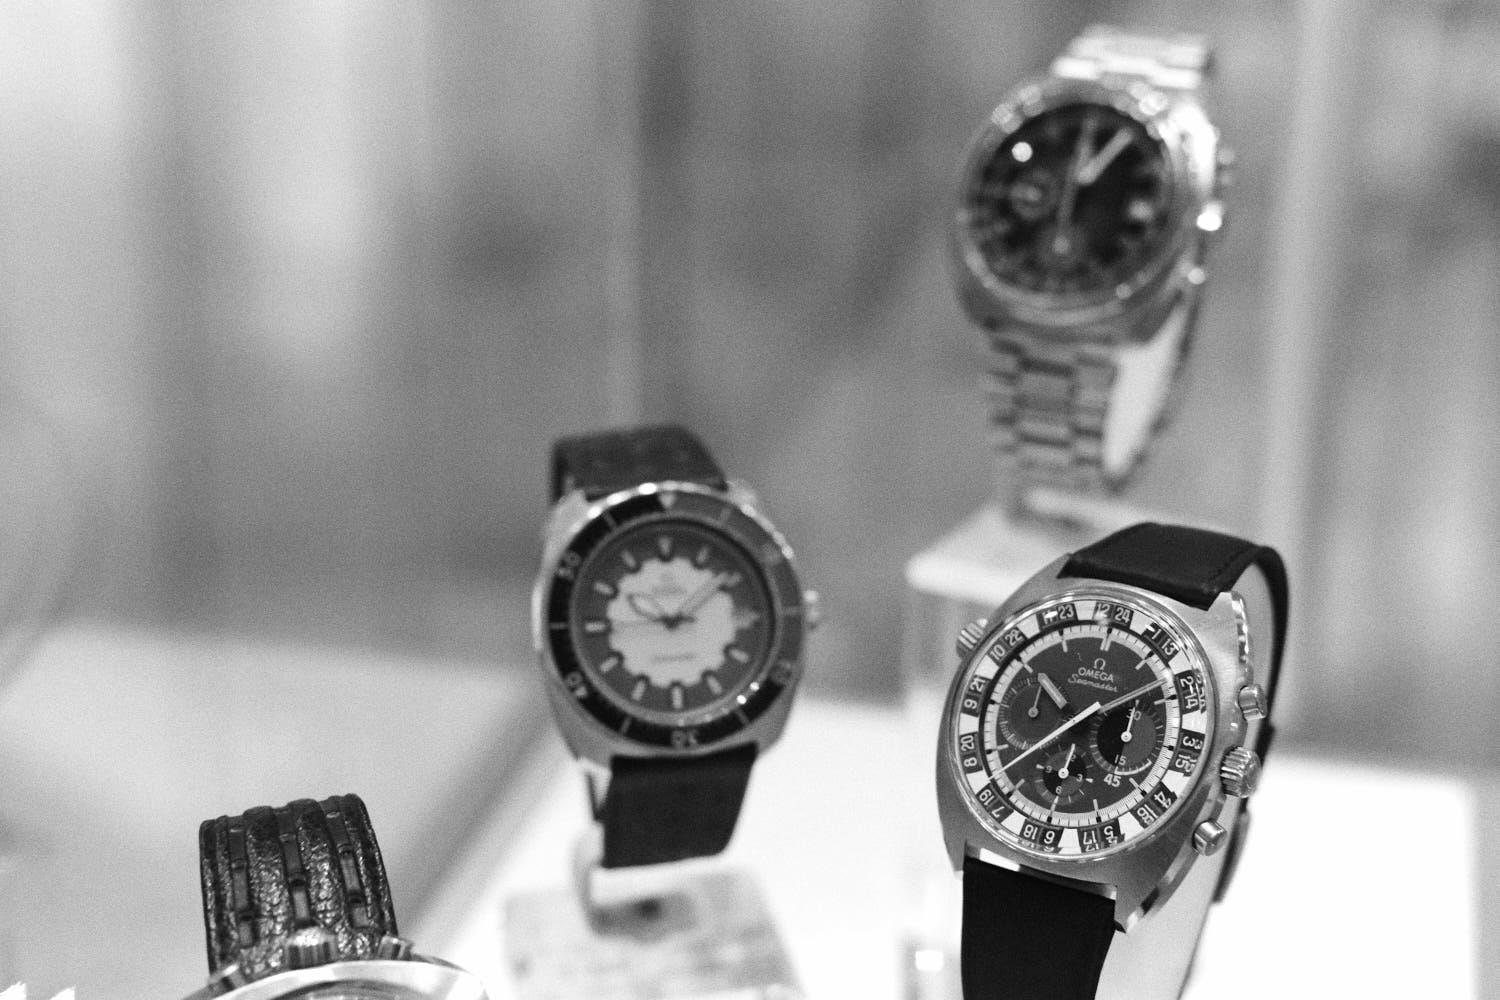 Seamaster-variants-Omega-Museum-Visit-Monochrome-Watches